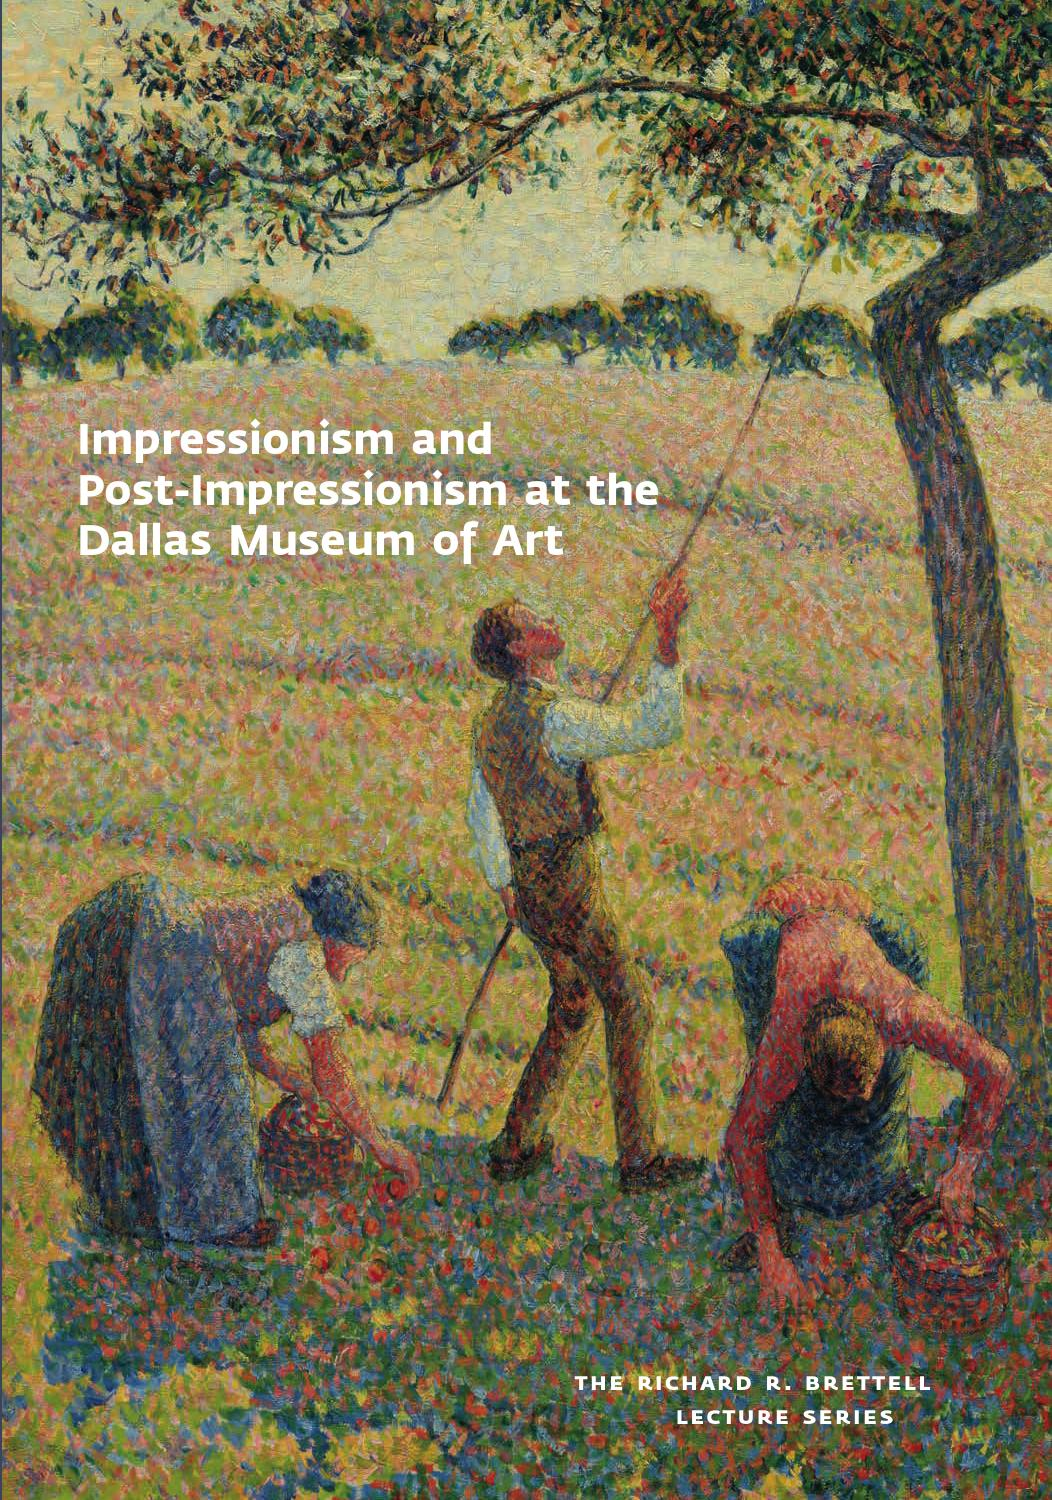 Art De L Ame Toulouse impressionism and post-impressionism at the dallas museum of